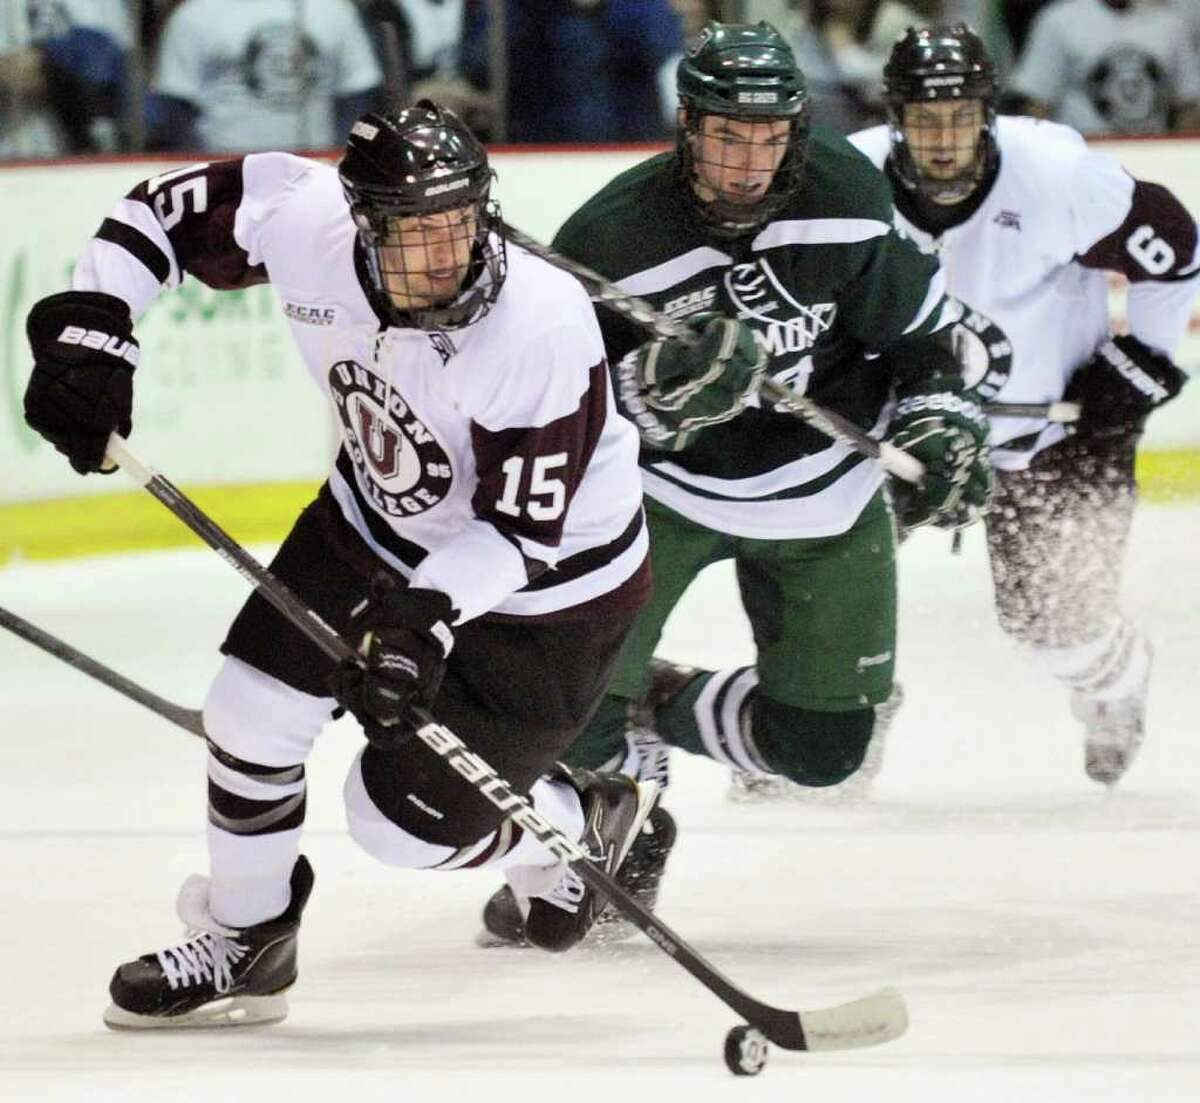 Union's #15 Matt Hatch, left, Dartmouth's #19 Eric Robinson and Union's #6 Charlie Vasaturo, at right, during their game at Union College's Messa Rink in Schenectady Saturday Jan. 7, 2012. (John Carl D'Annibale / Times Union)